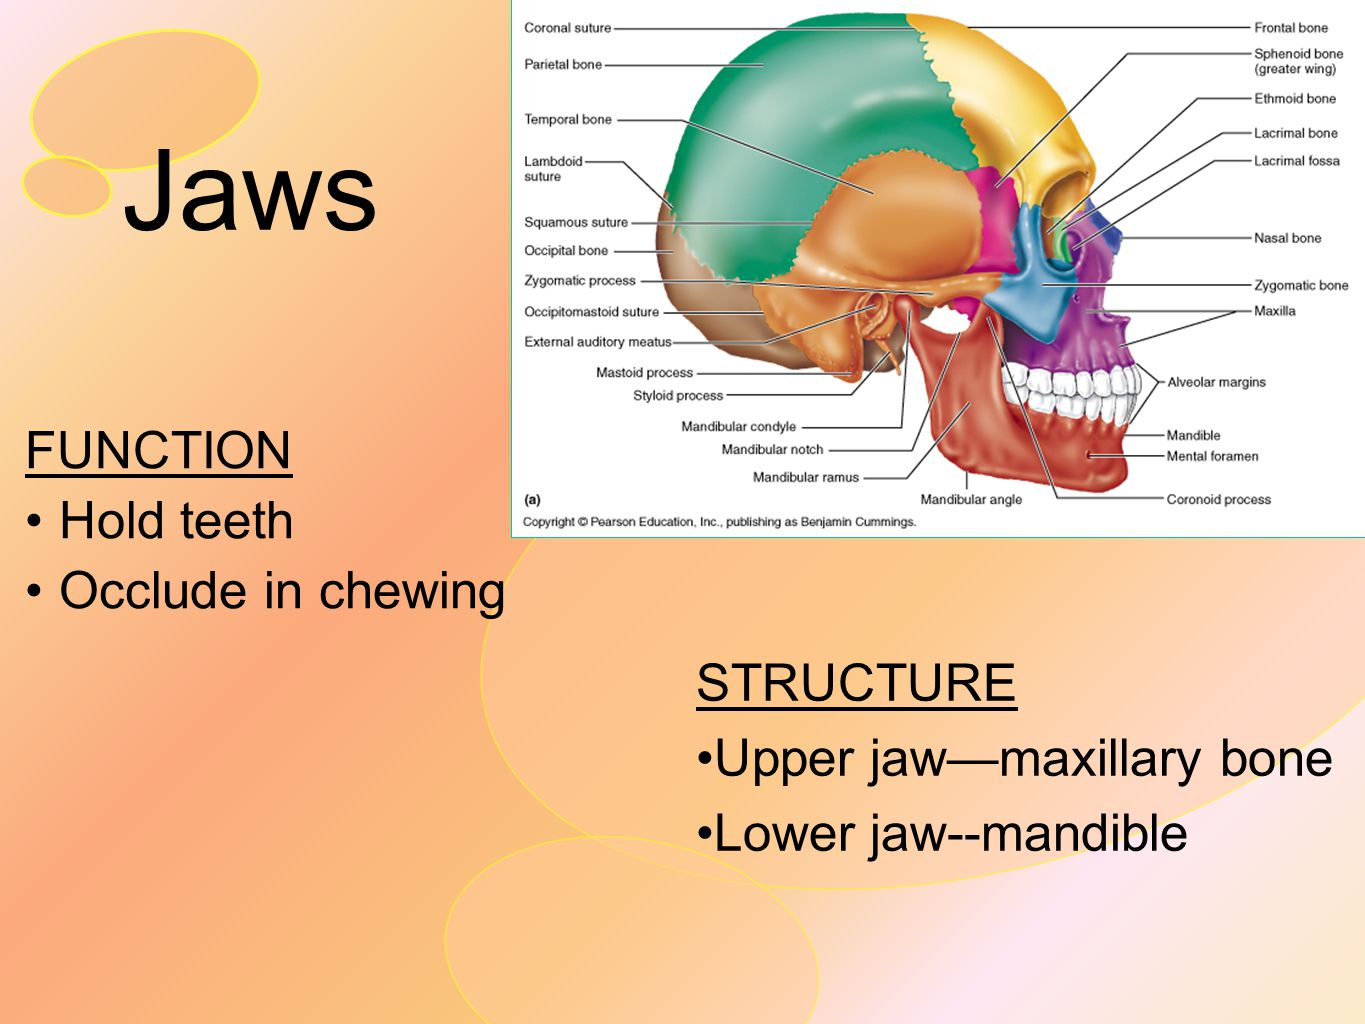 Jaws FUNCTION Hold teeth Occlude in chewing STRUCTURE